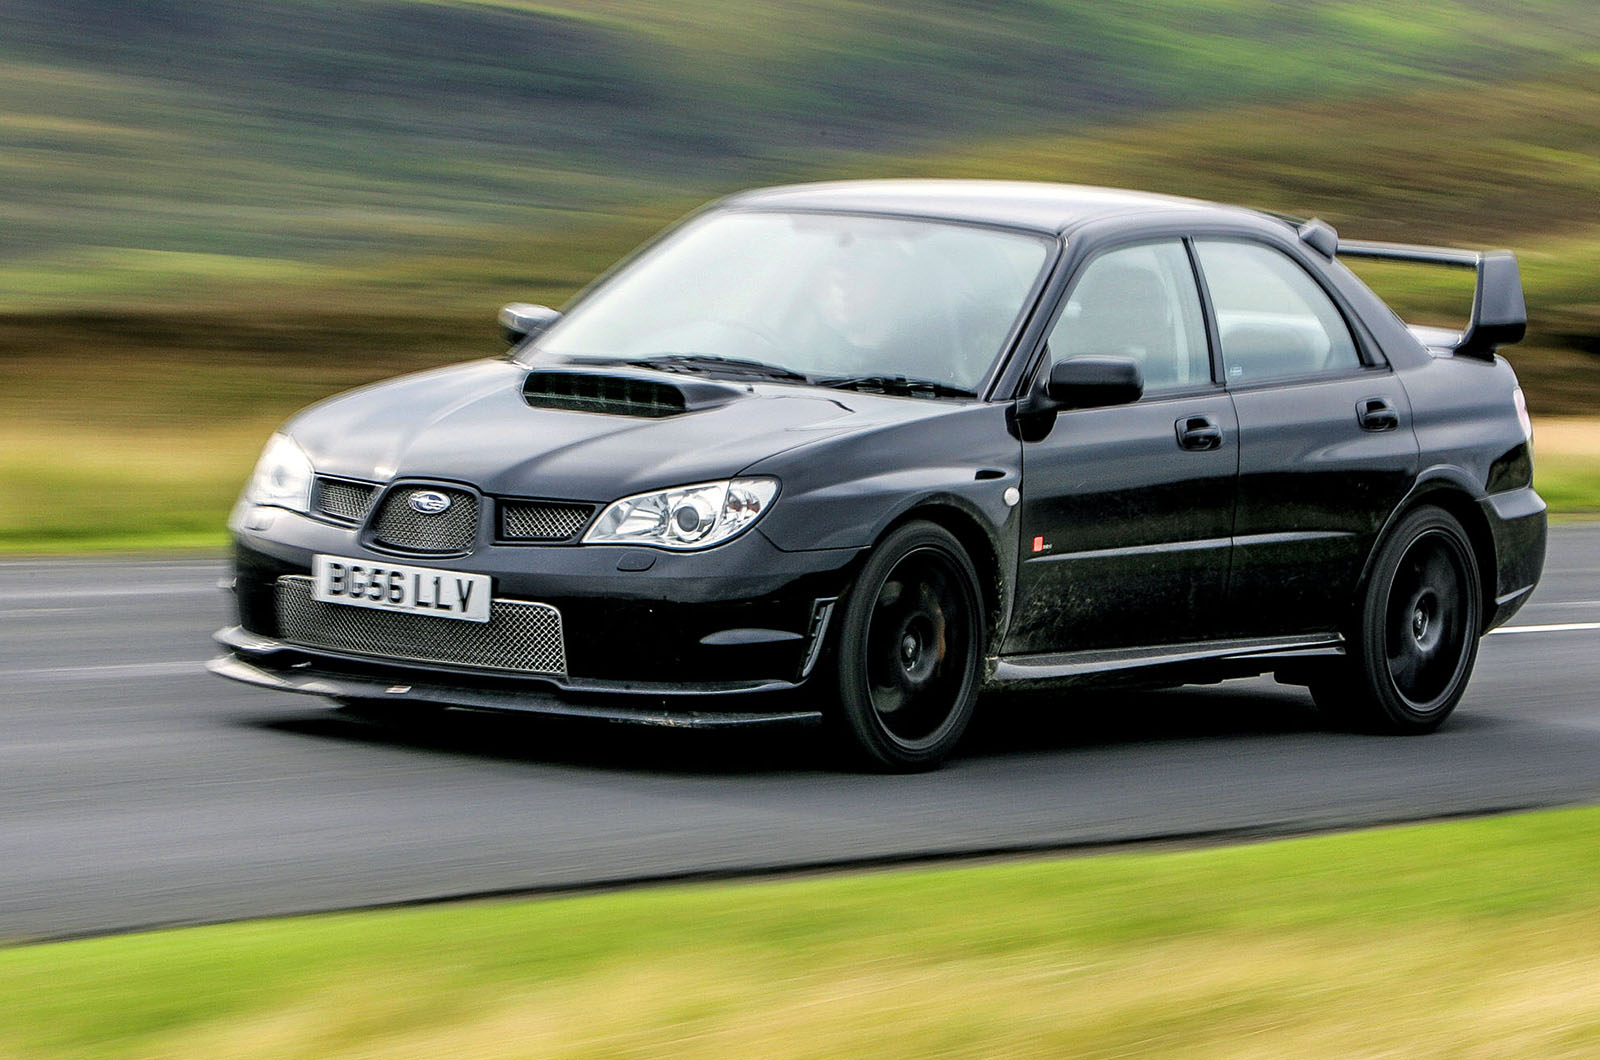 The Impreza RB320 was built to commemorate the passing of Richard Burns